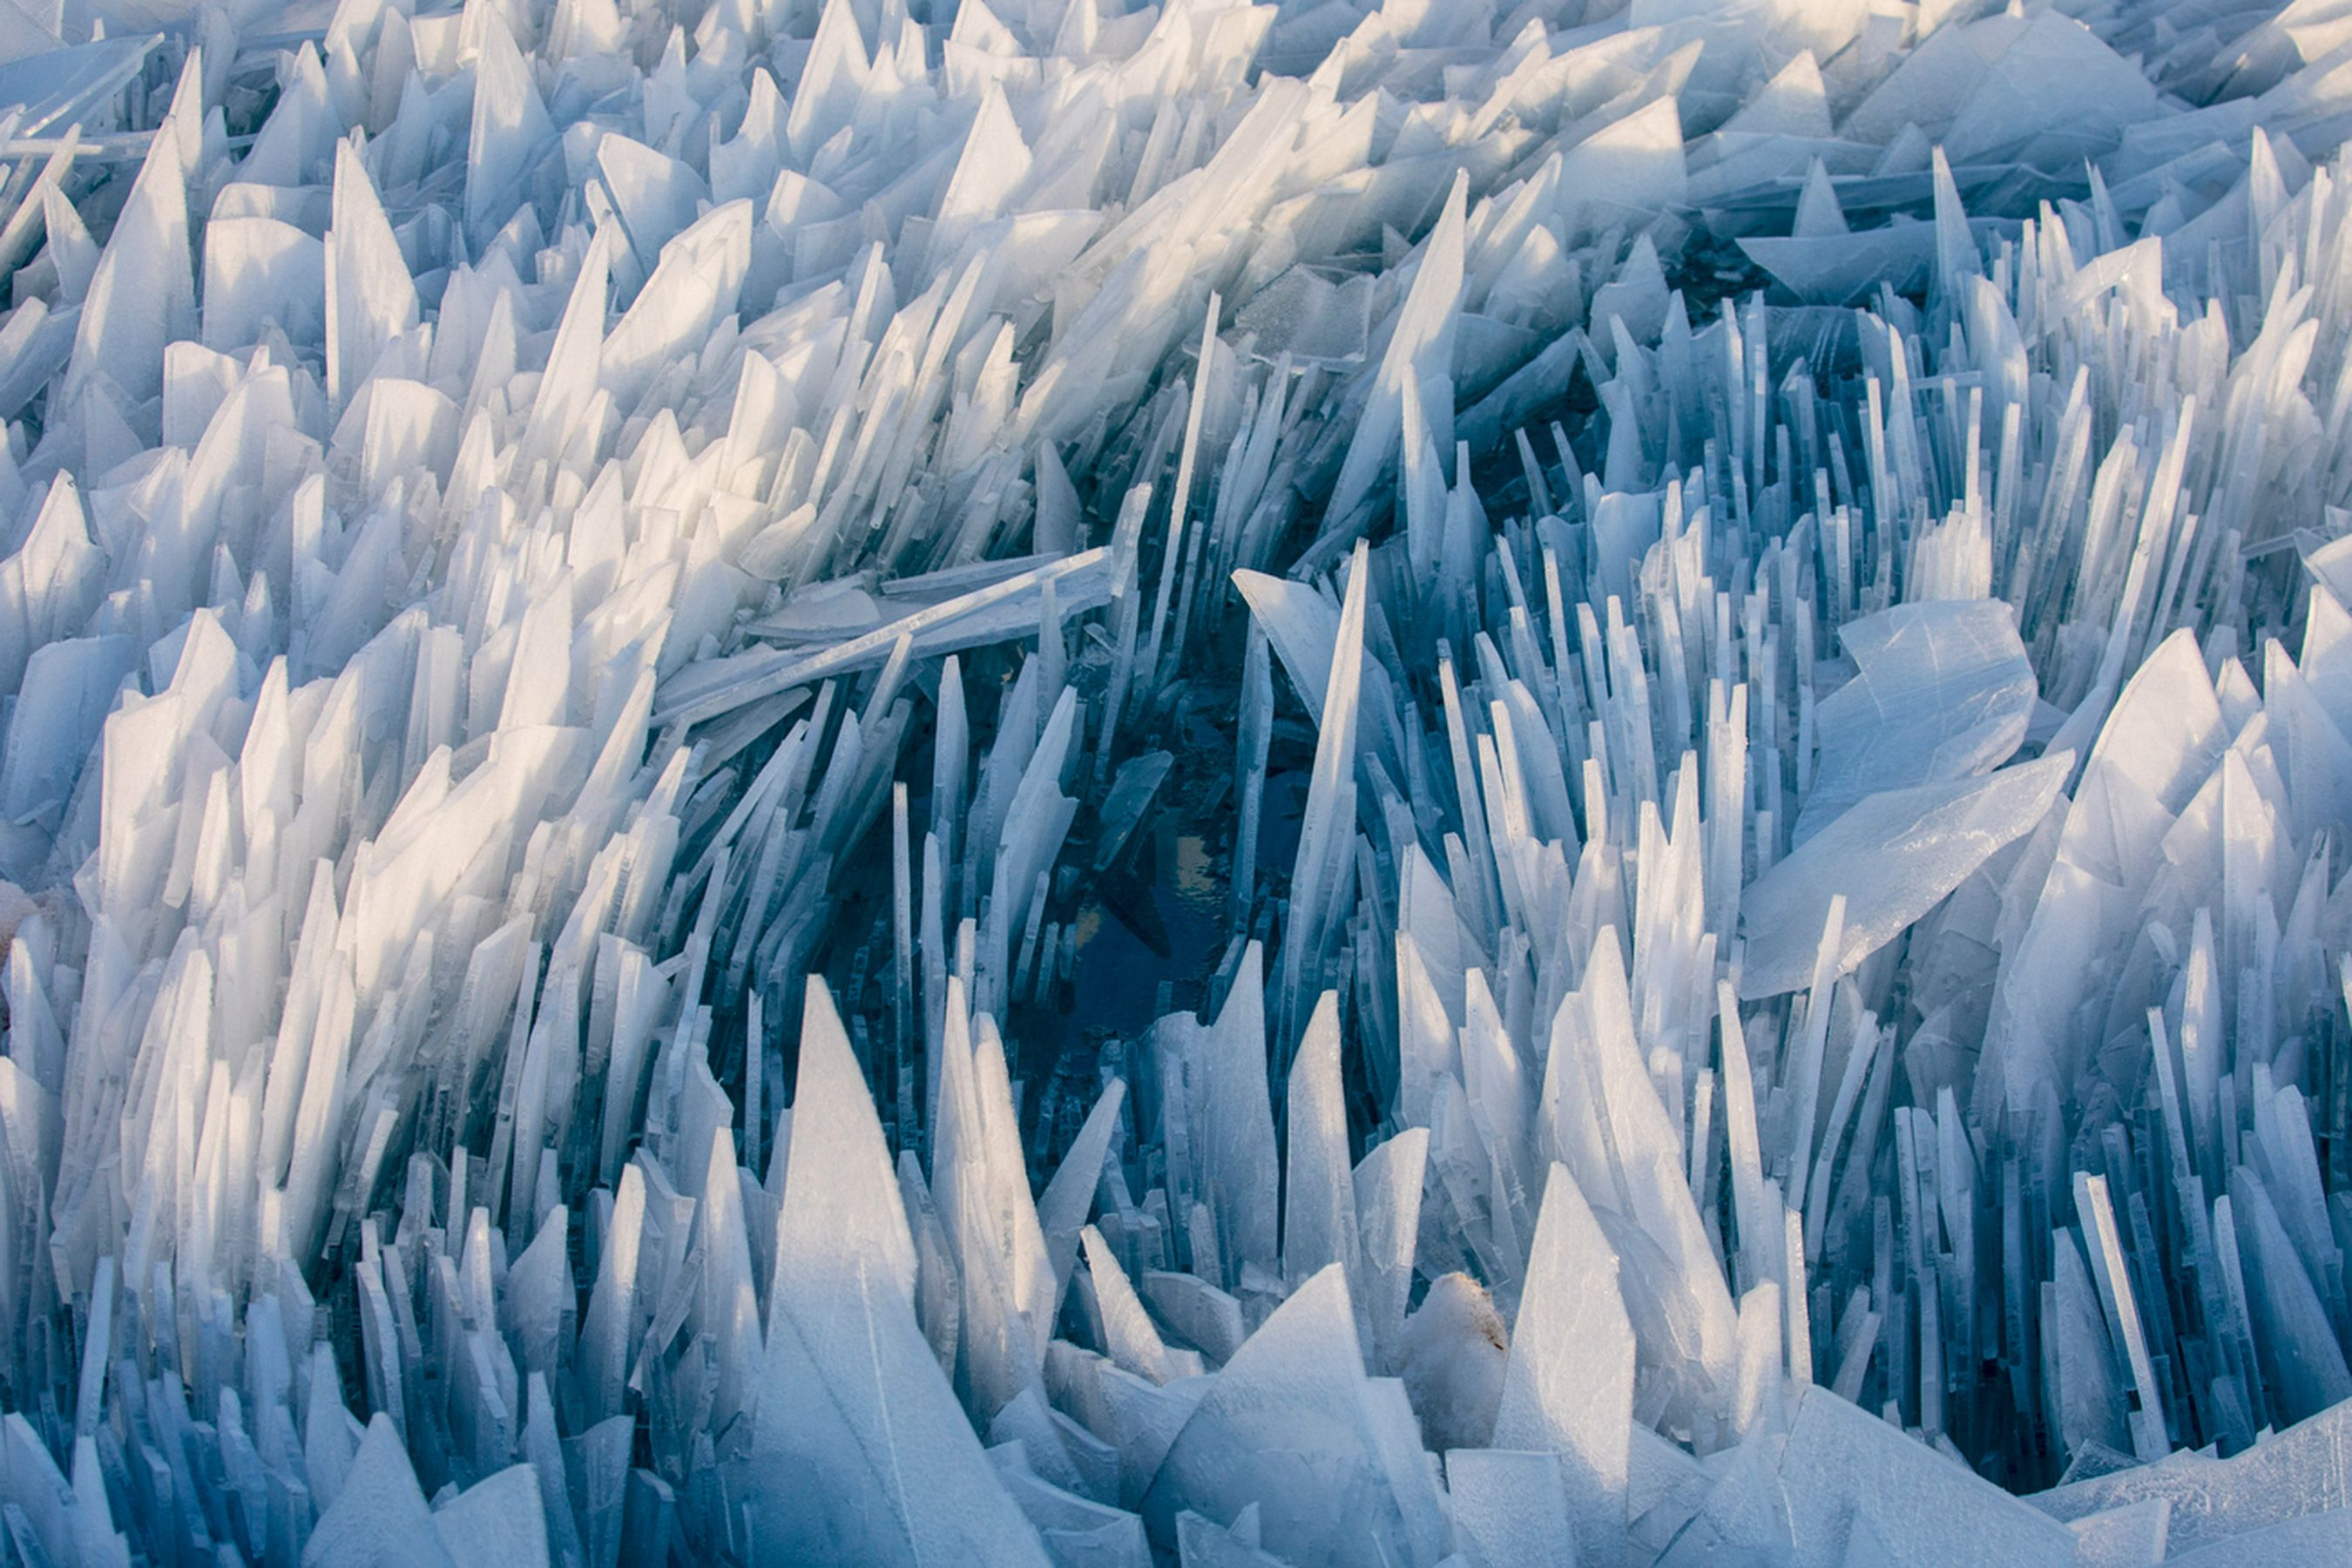 Ice Ice Baby Beautiful Ice Shards Pile Up Along Lake Michigan As Frozen Water Begins To Thaw Surreal Scenes Ice Pictures Ice Aesthetic